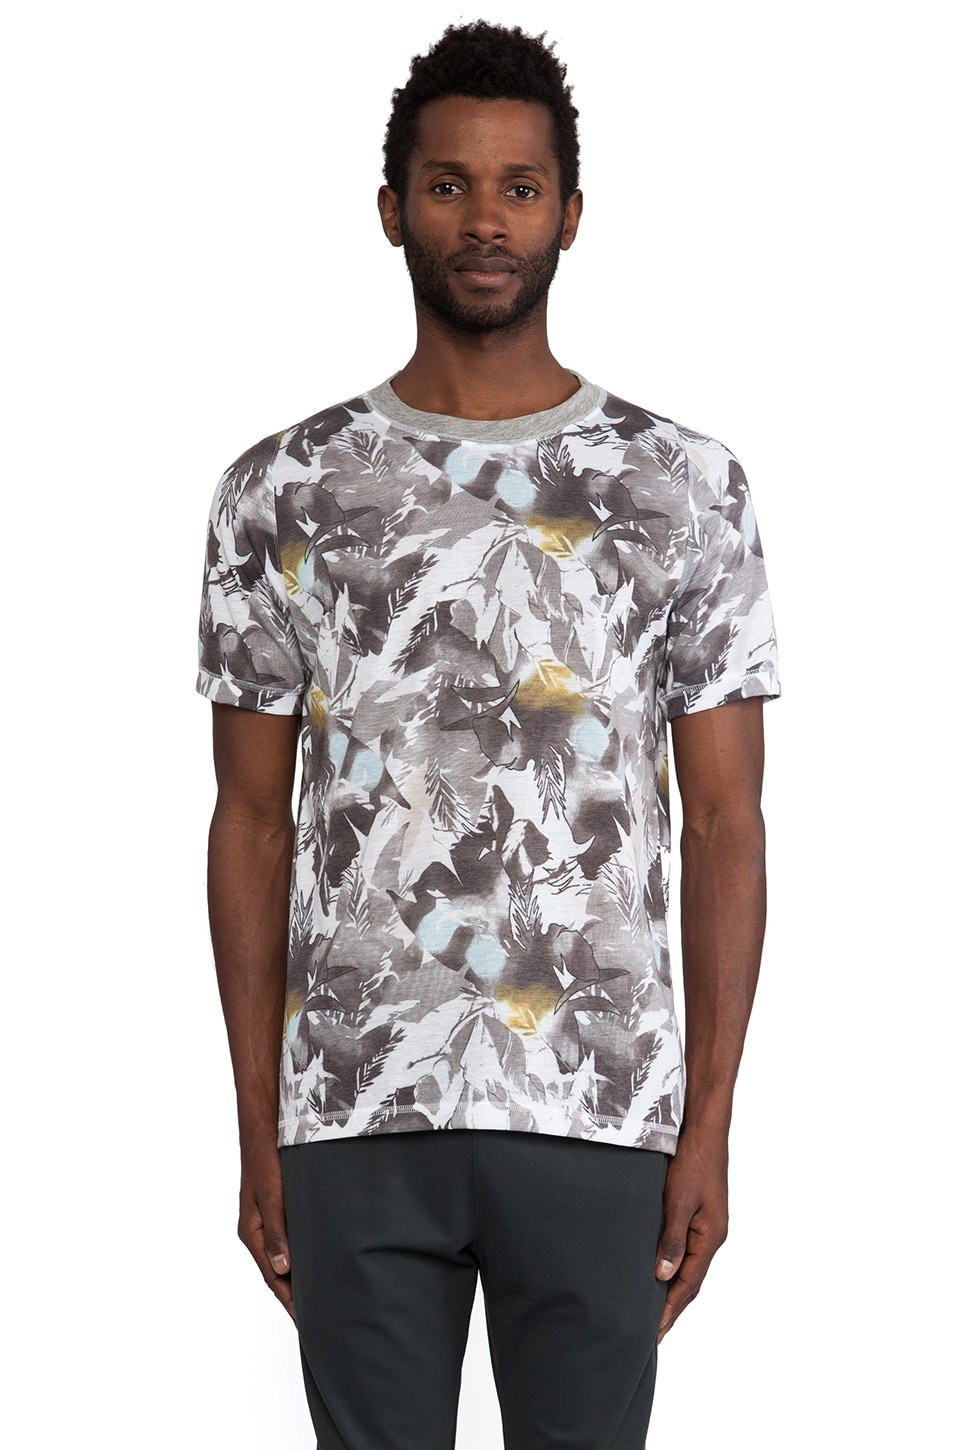 Theory 38 Treck Graphic Tee in Grey Multi